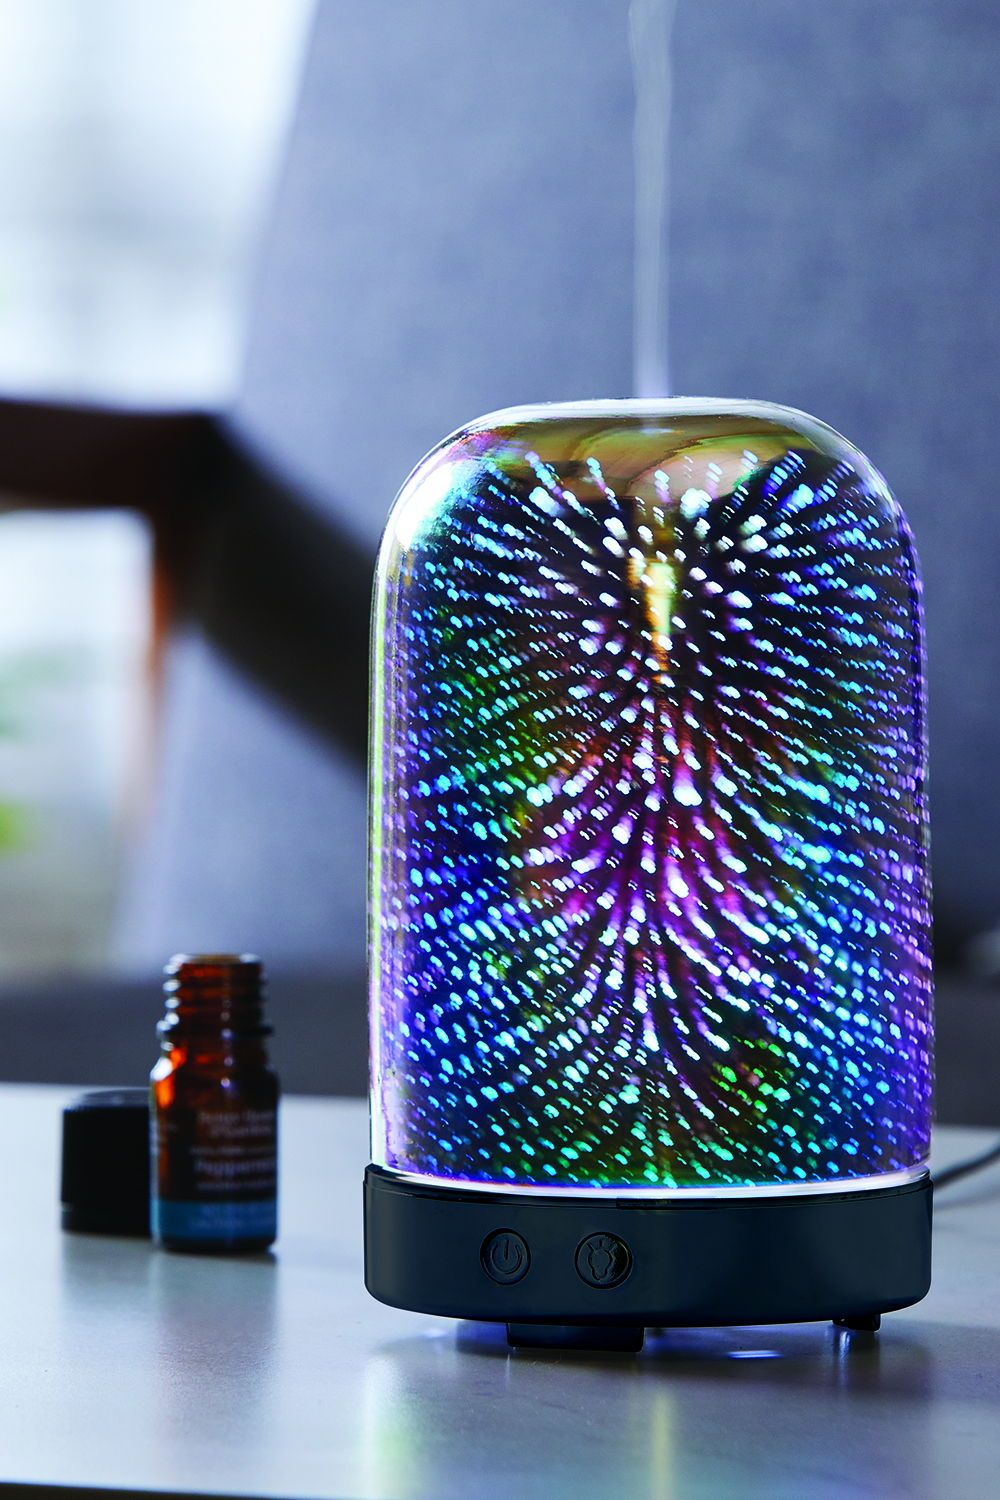 Better Homes And Gardens Essential Oil Diffuser Instructions